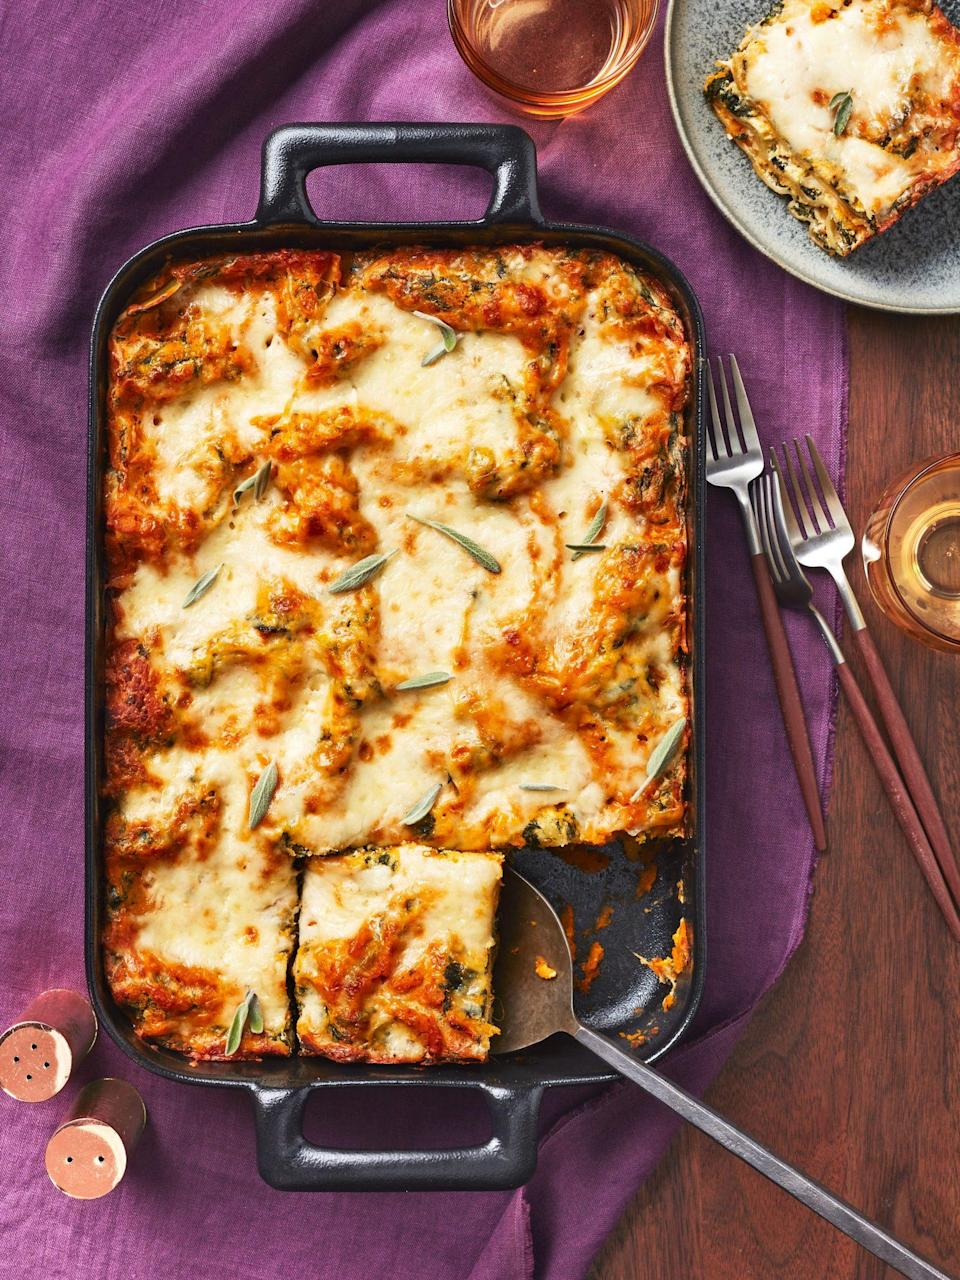 """<p><strong>Recipe: <a href=""""https://www.southernliving.com/recipes/butternut-squash-lasagna"""" rel=""""nofollow noopener"""" target=""""_blank"""" data-ylk=""""slk:Butternut Squash Lasagna"""" class=""""link rapid-noclick-resp"""">Butternut Squash Lasagna</a></strong></p> <p>Give crowd-pleasing lasagna a dose of warm autumnal flair by using mashed butternut squash between layers of pasta and all the cheese. </p>"""